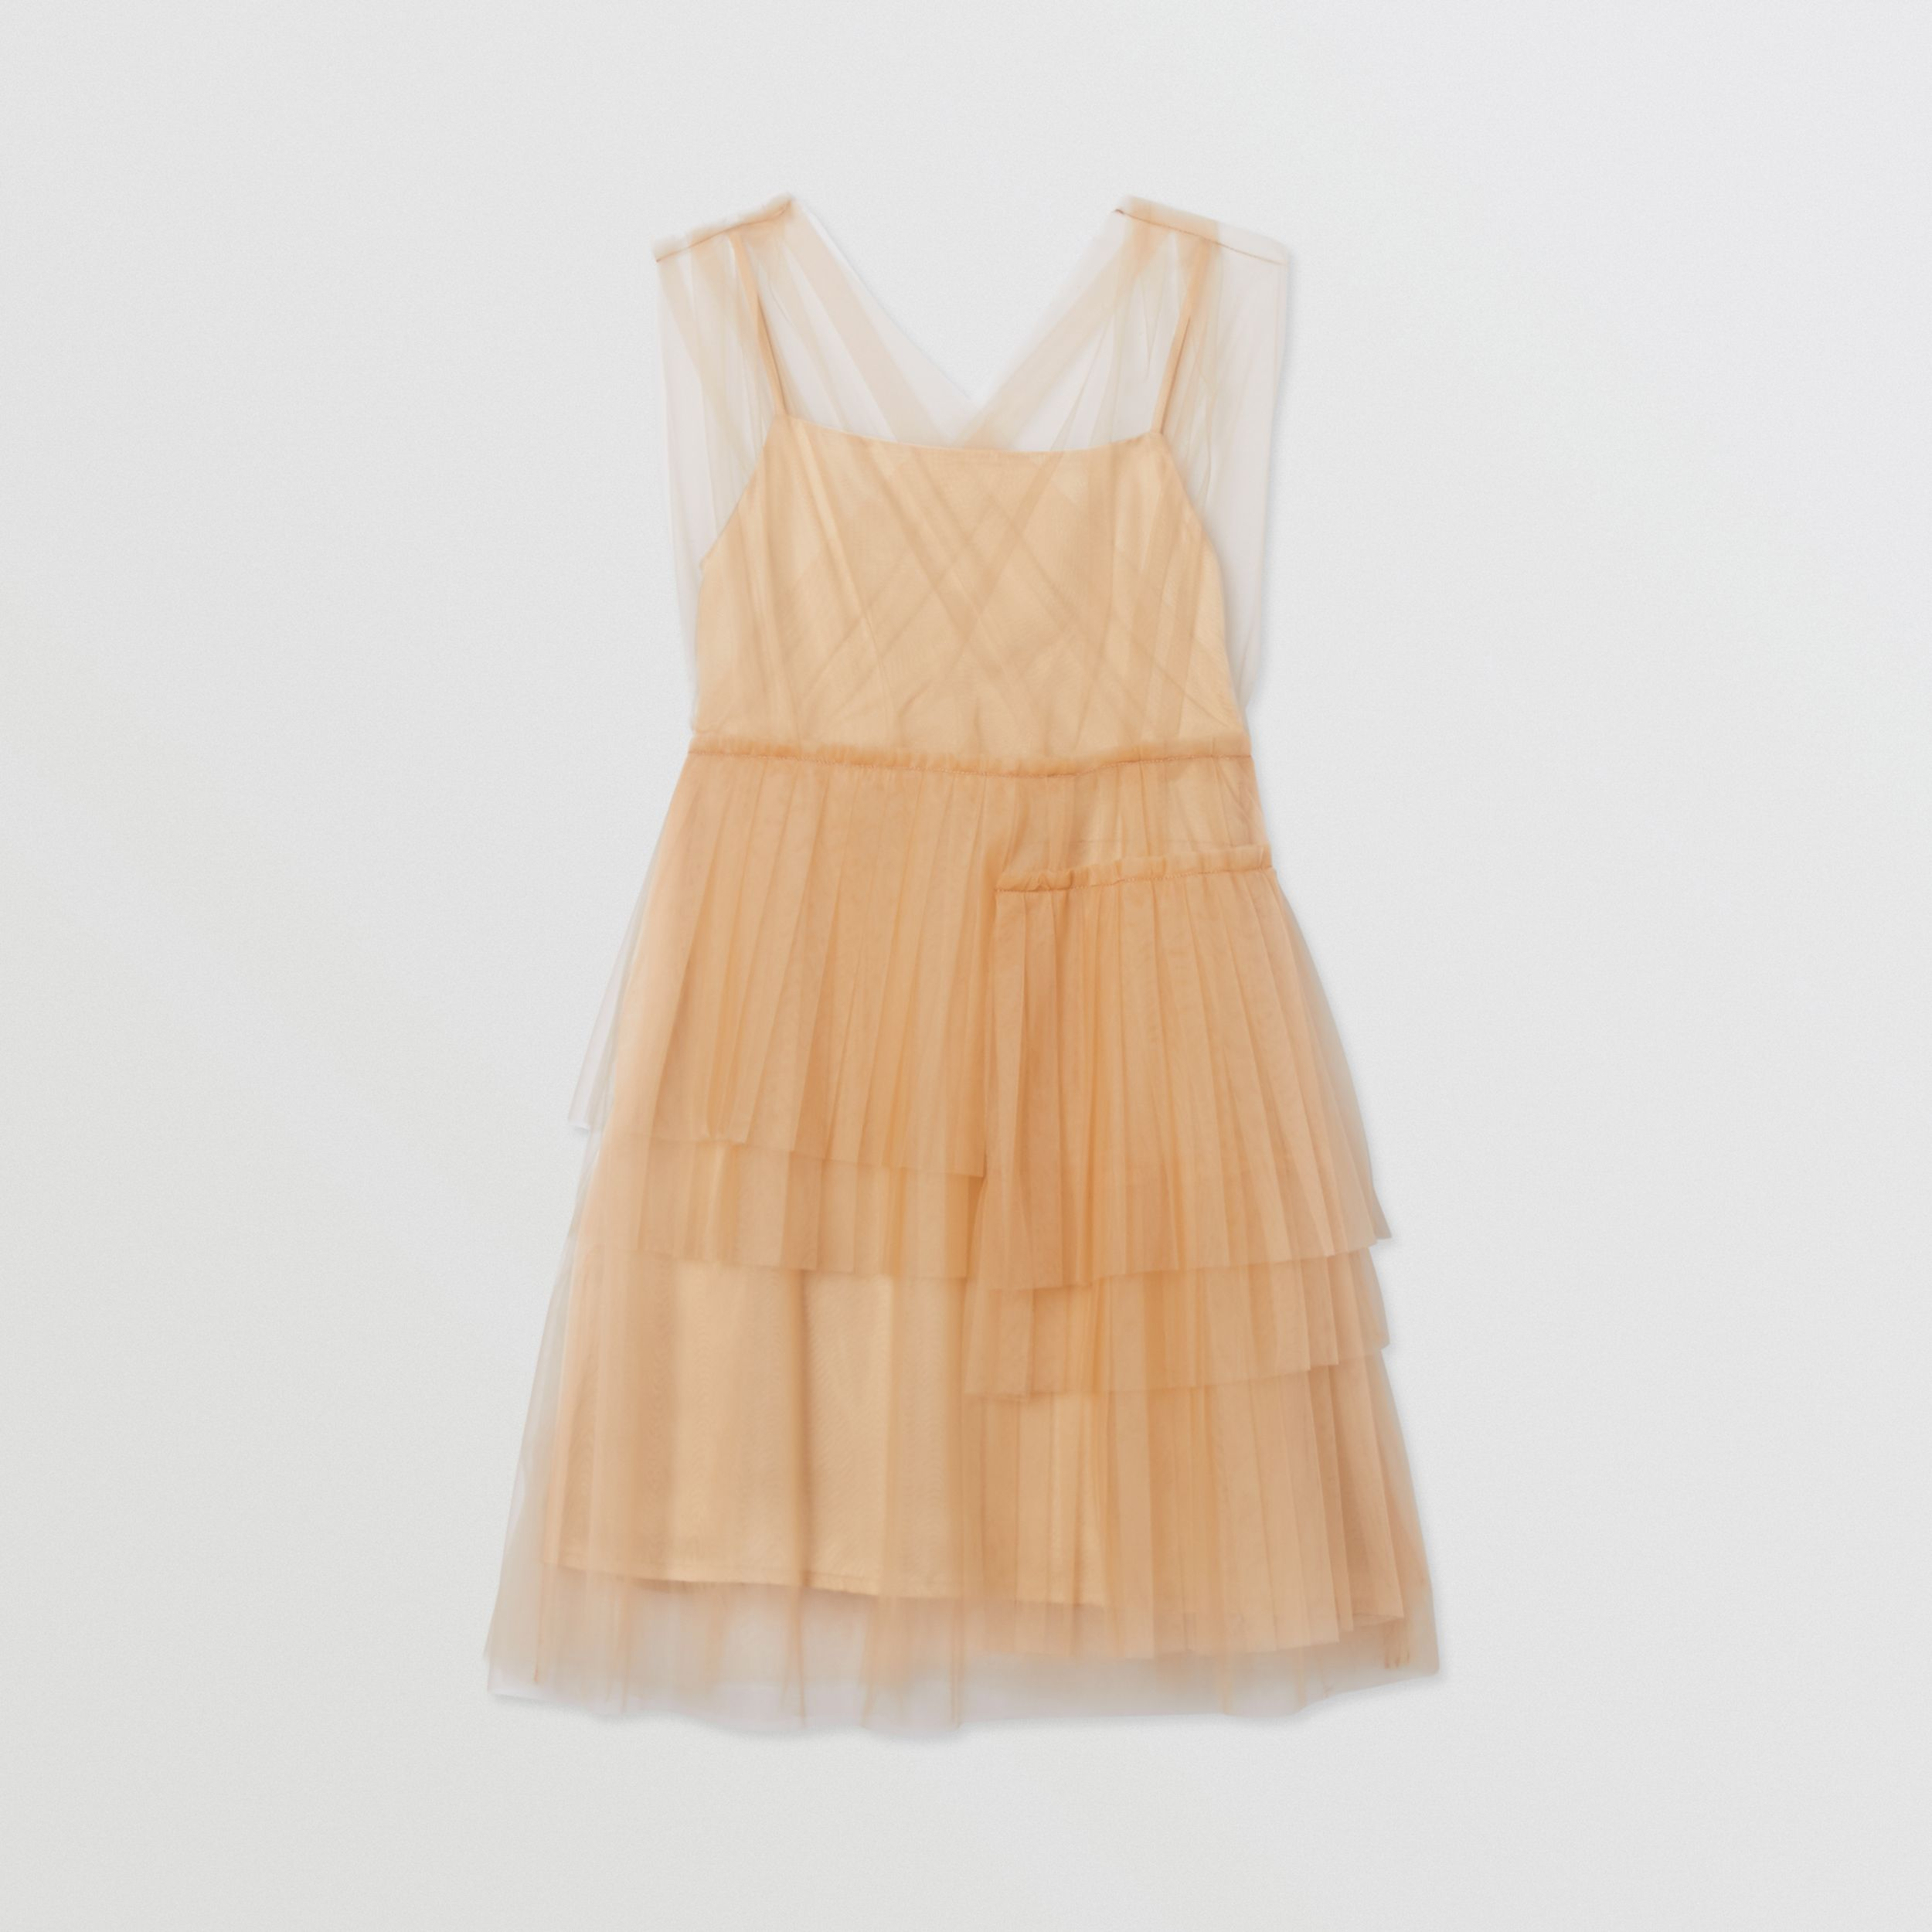 Tulle Tiered Dress in Oyster Beige | Burberry - 1